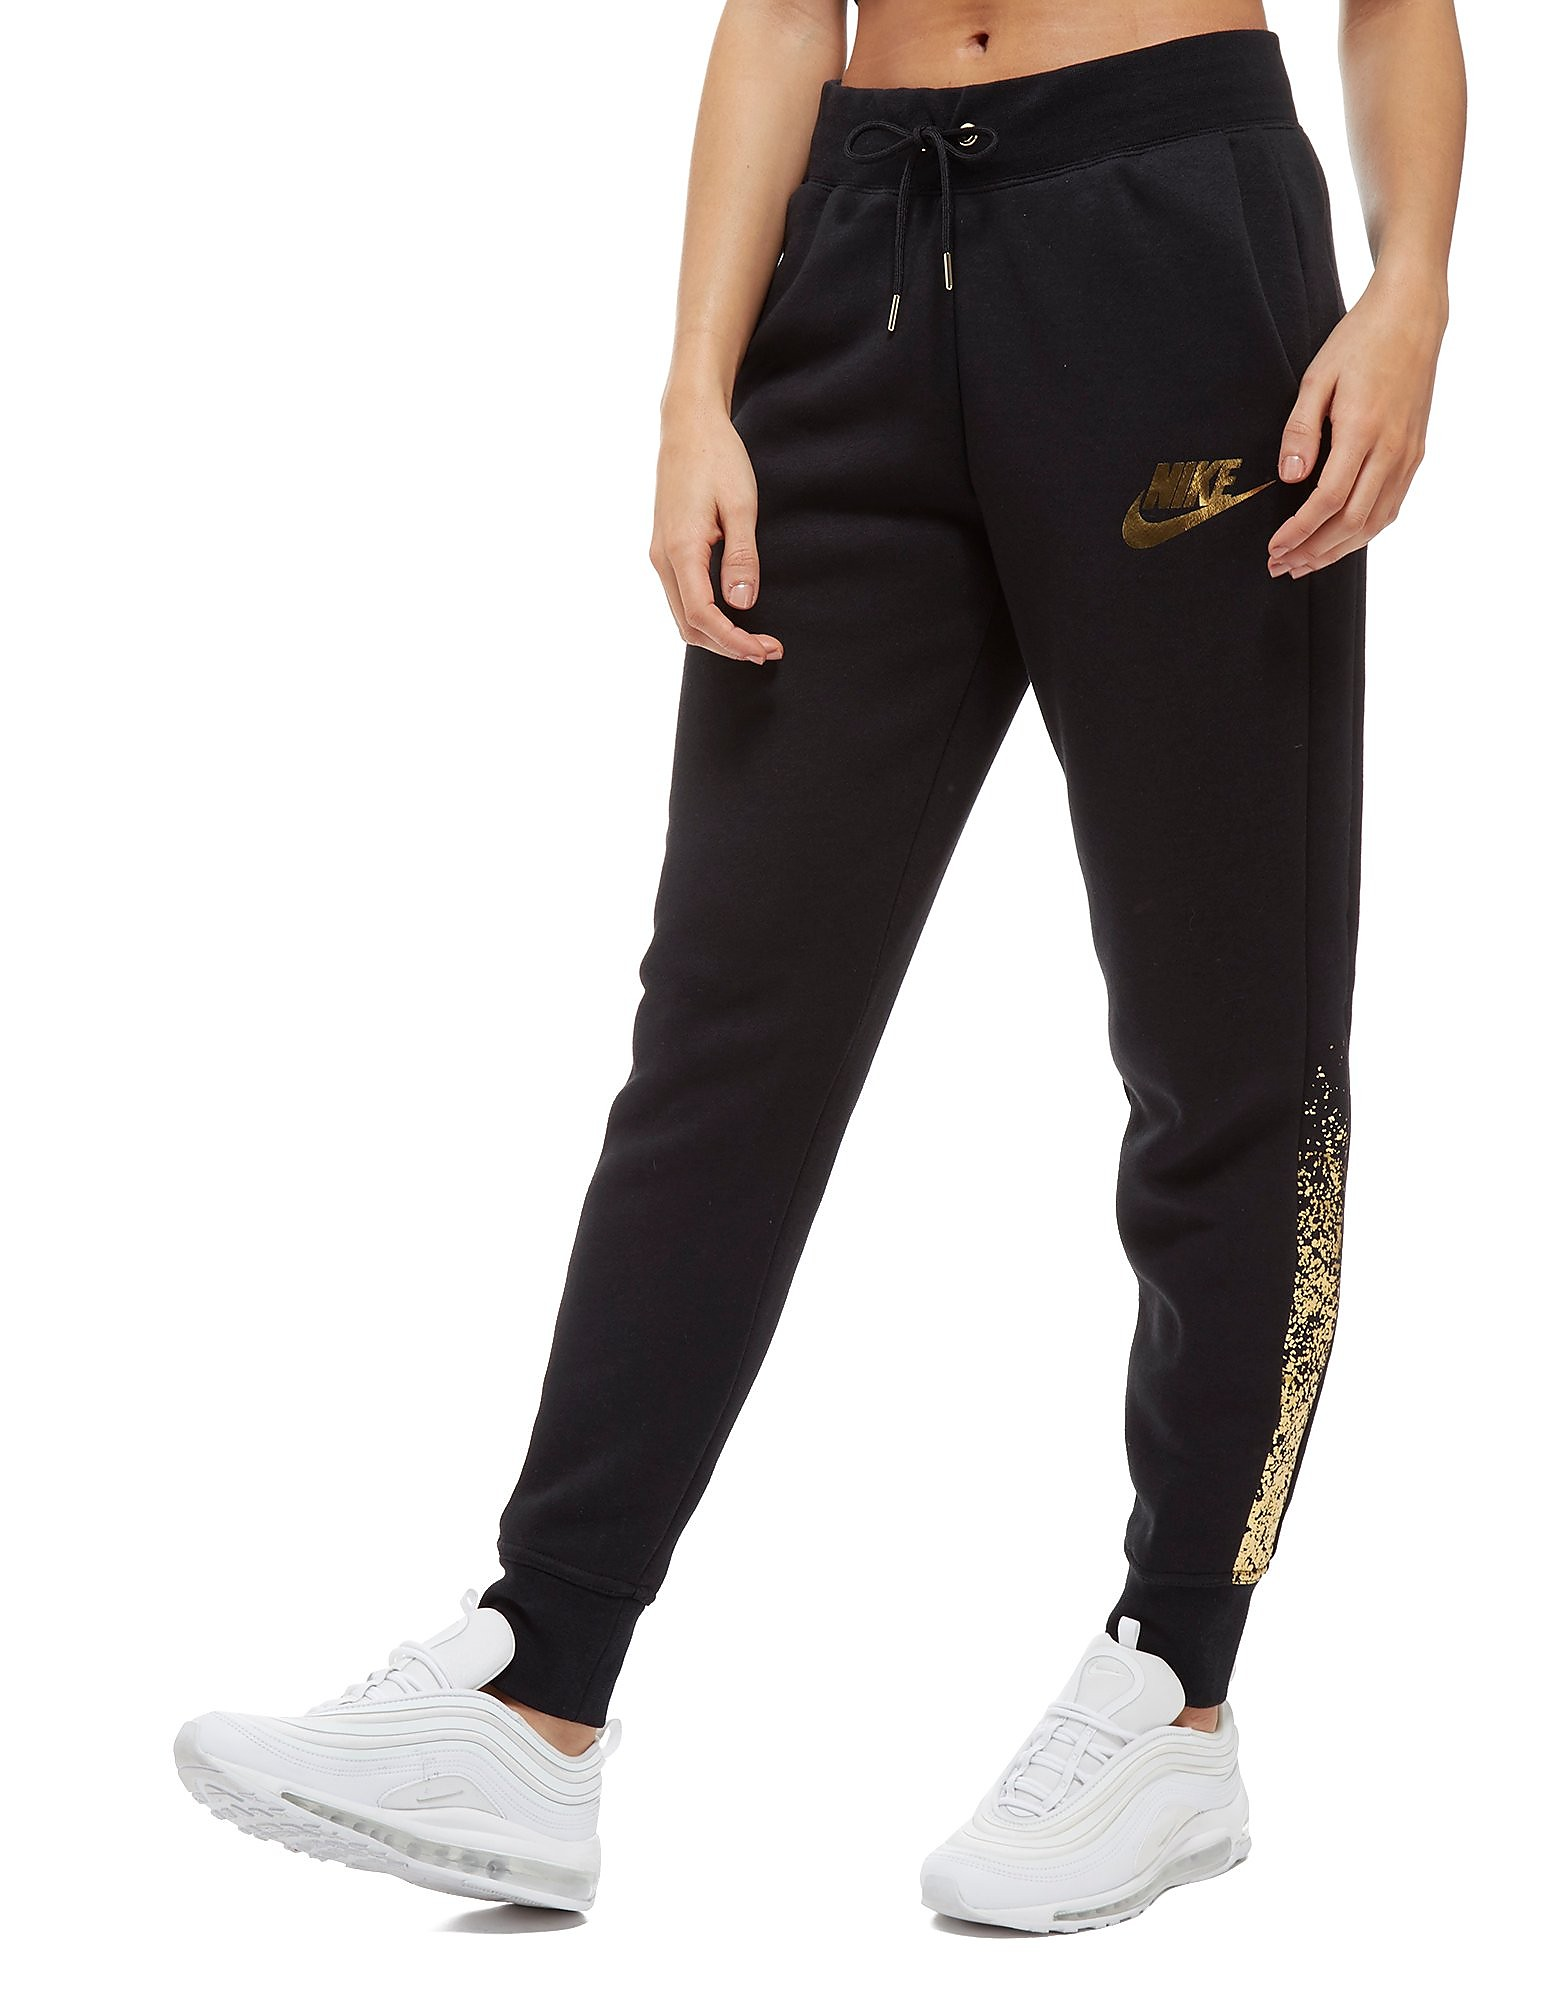 Nike Metallic Fleece Pants